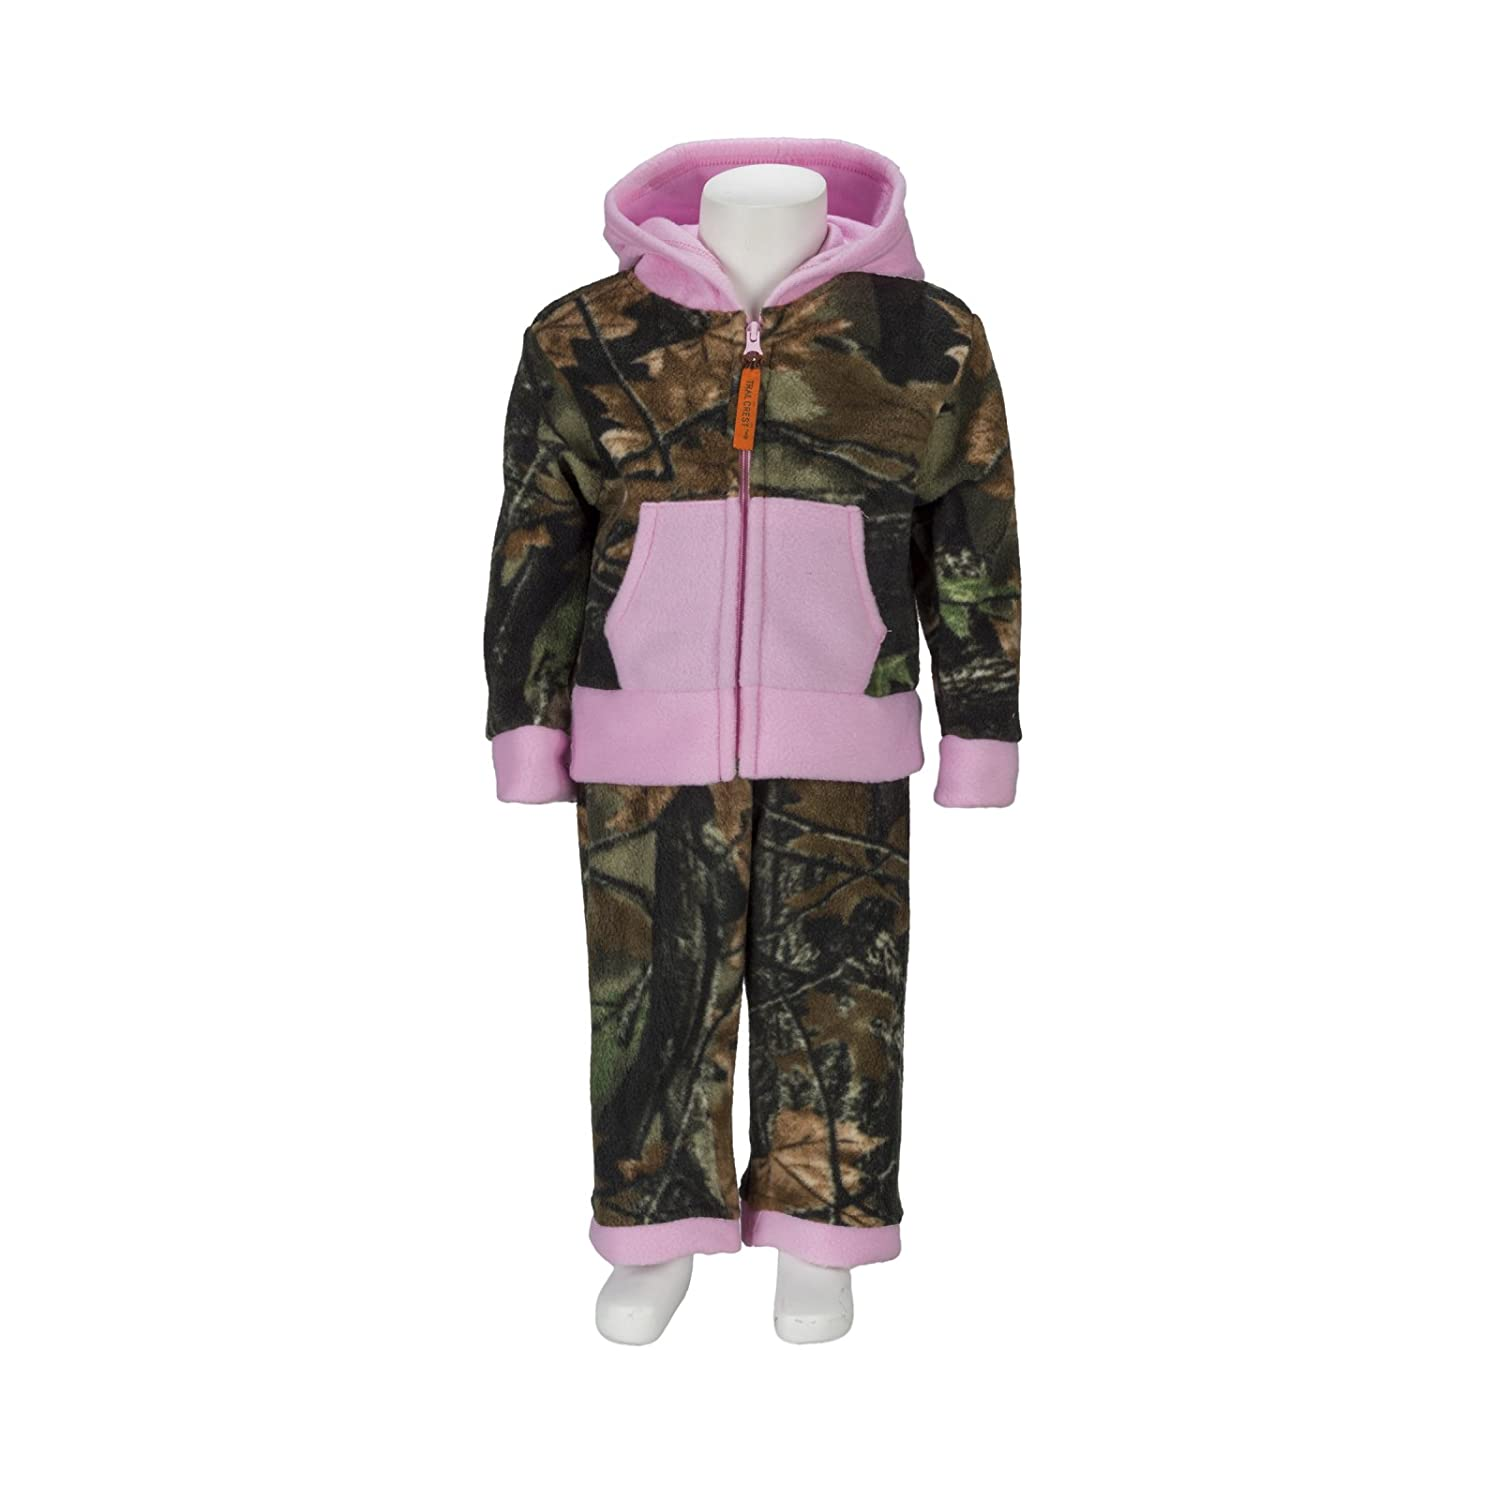 Trailcrest Toddler Two-Piece Pink and Camouflage Jacket and Pants Fleece Set 9925-05-5T